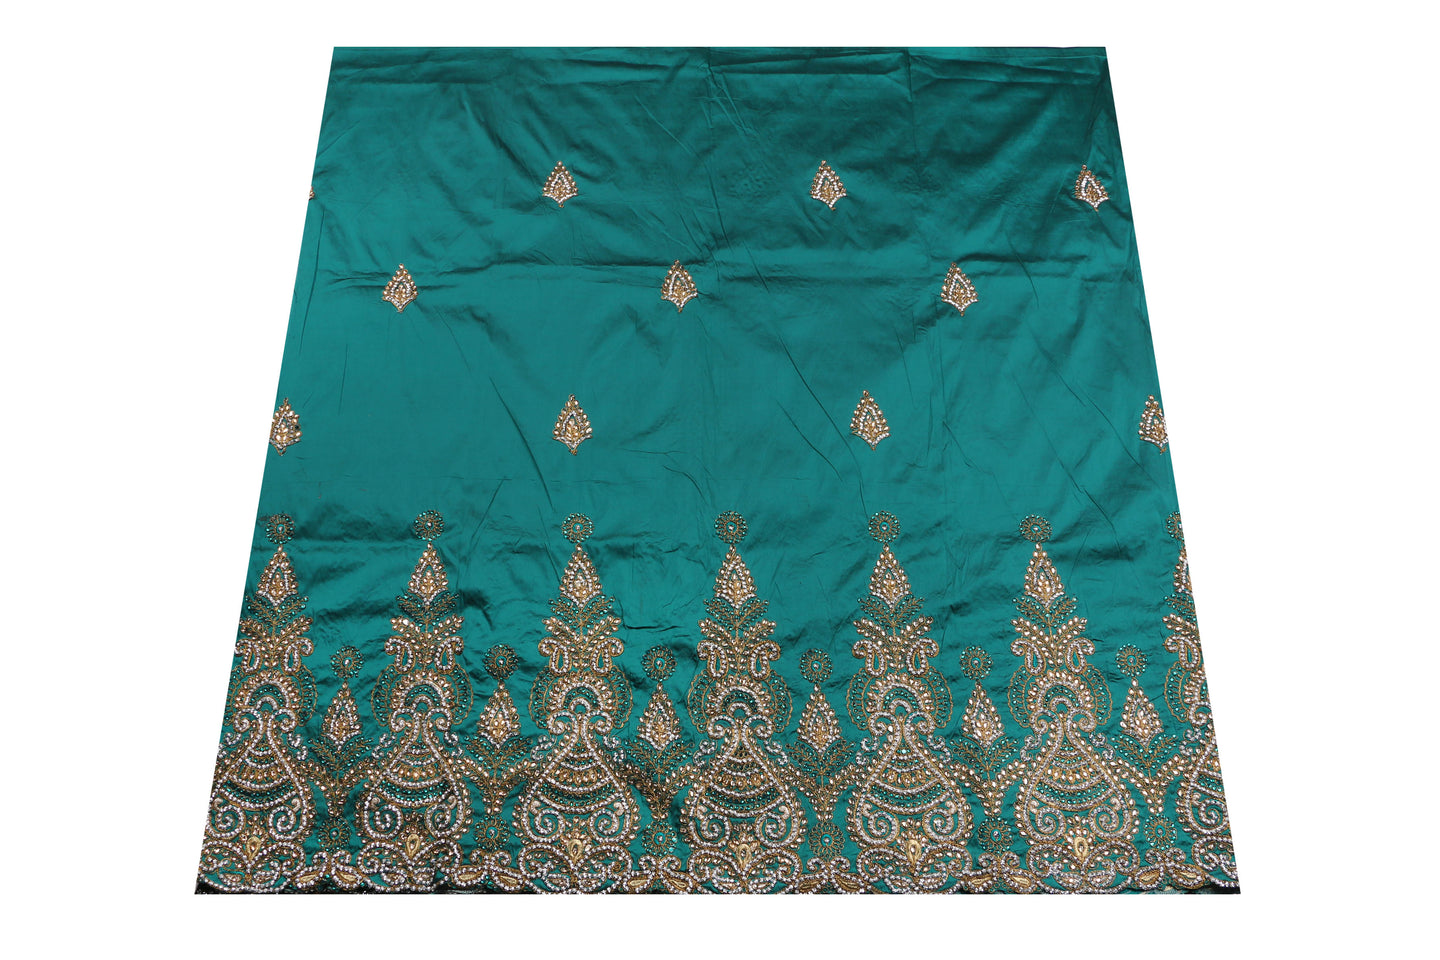 Hand Stoned George Wrapper Design # 6670 - Teal Green - With Blouse